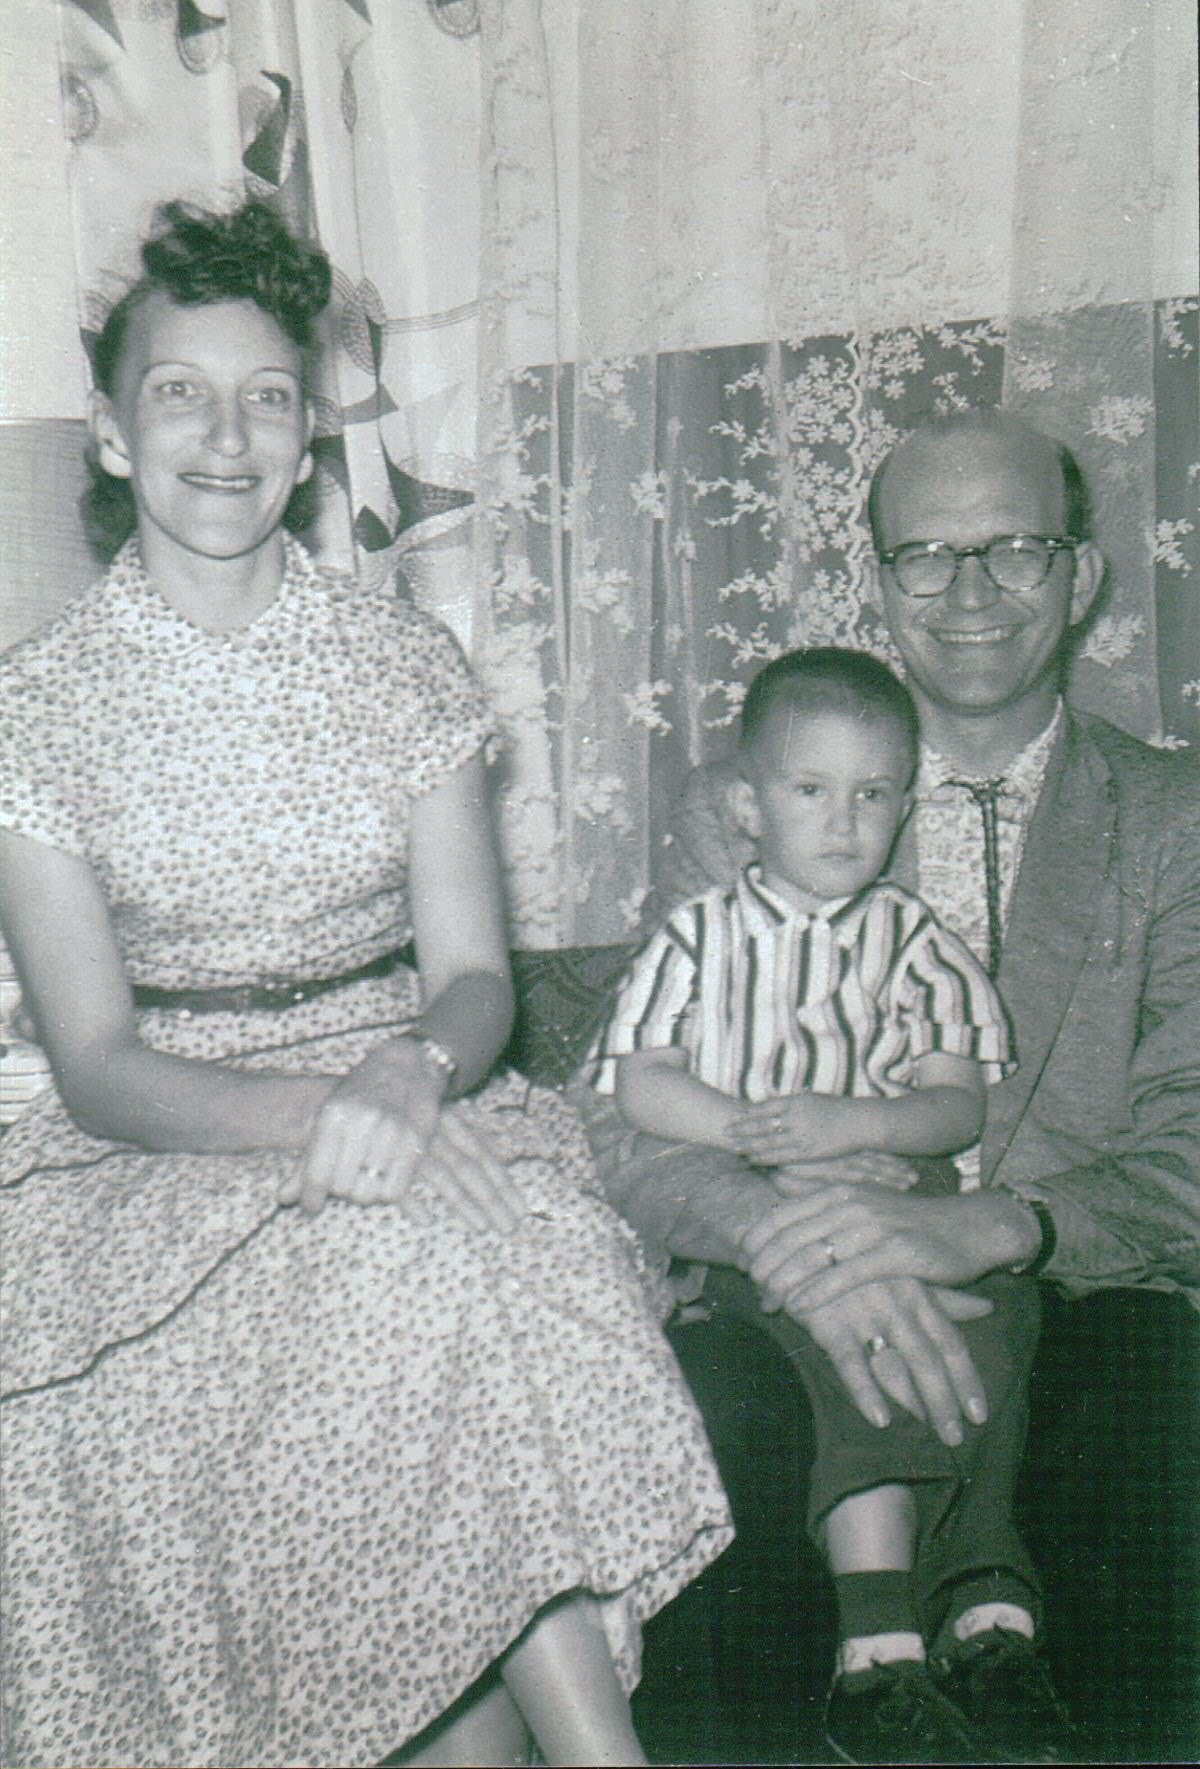 Bill & Jane Ketchum and family about 1957/1958.